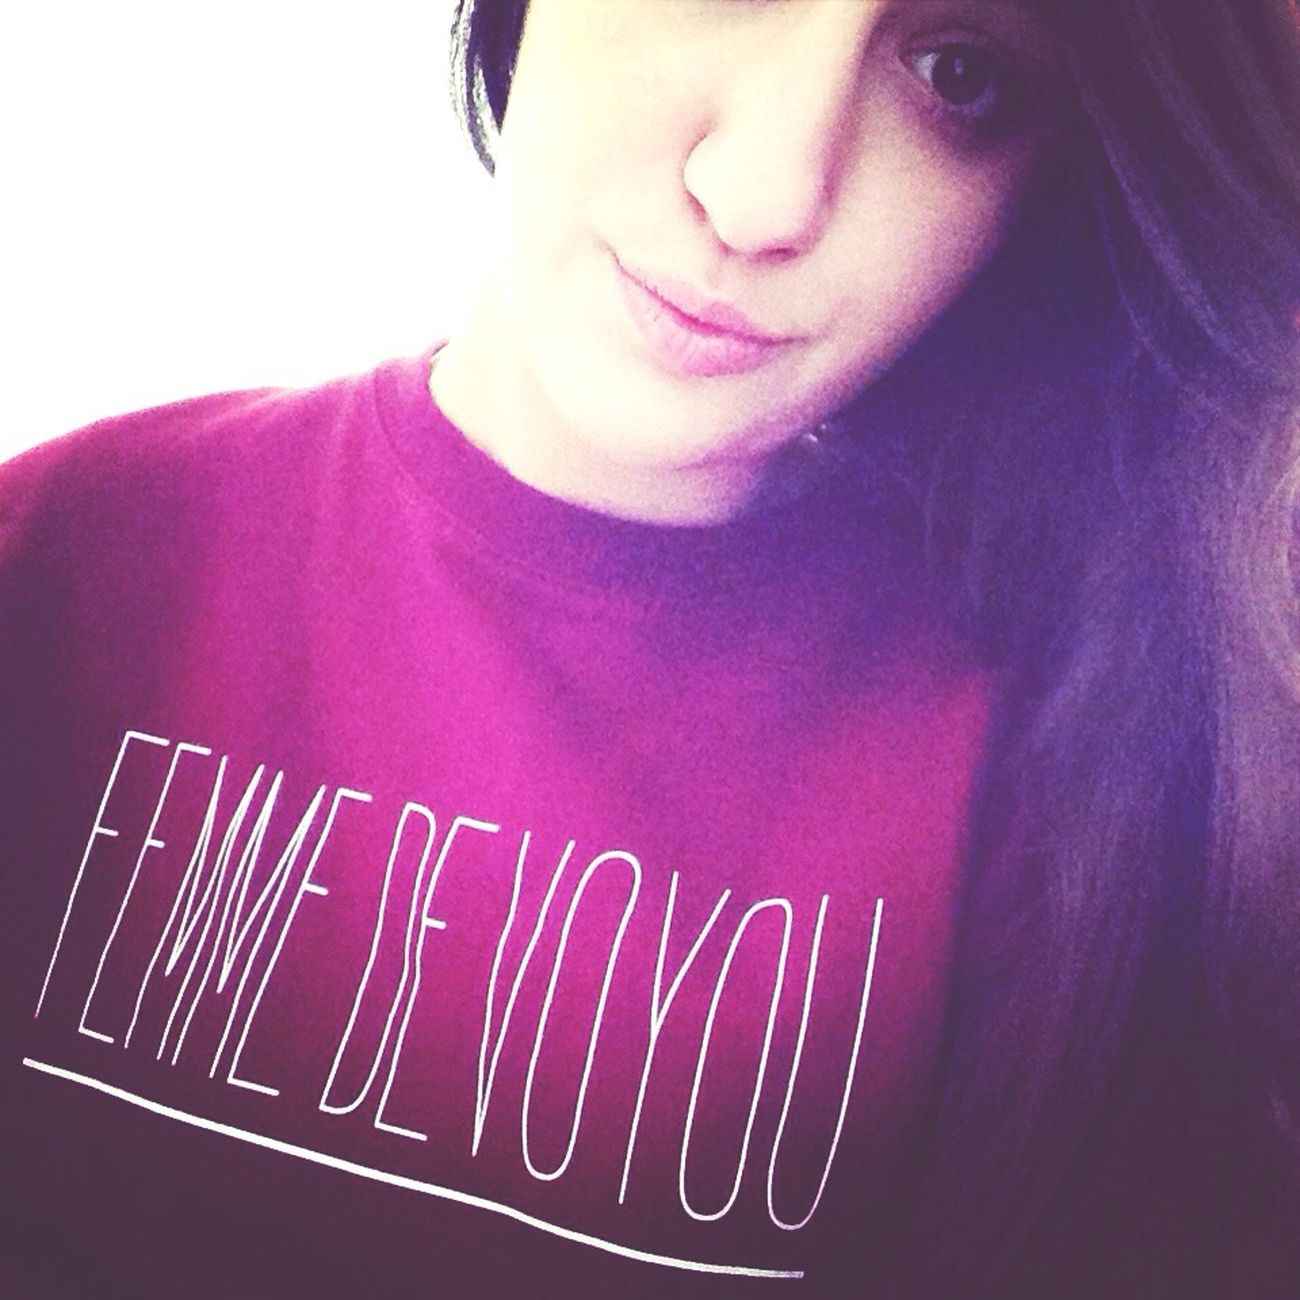 Femmedevoyou That's Me Fauve Hello World